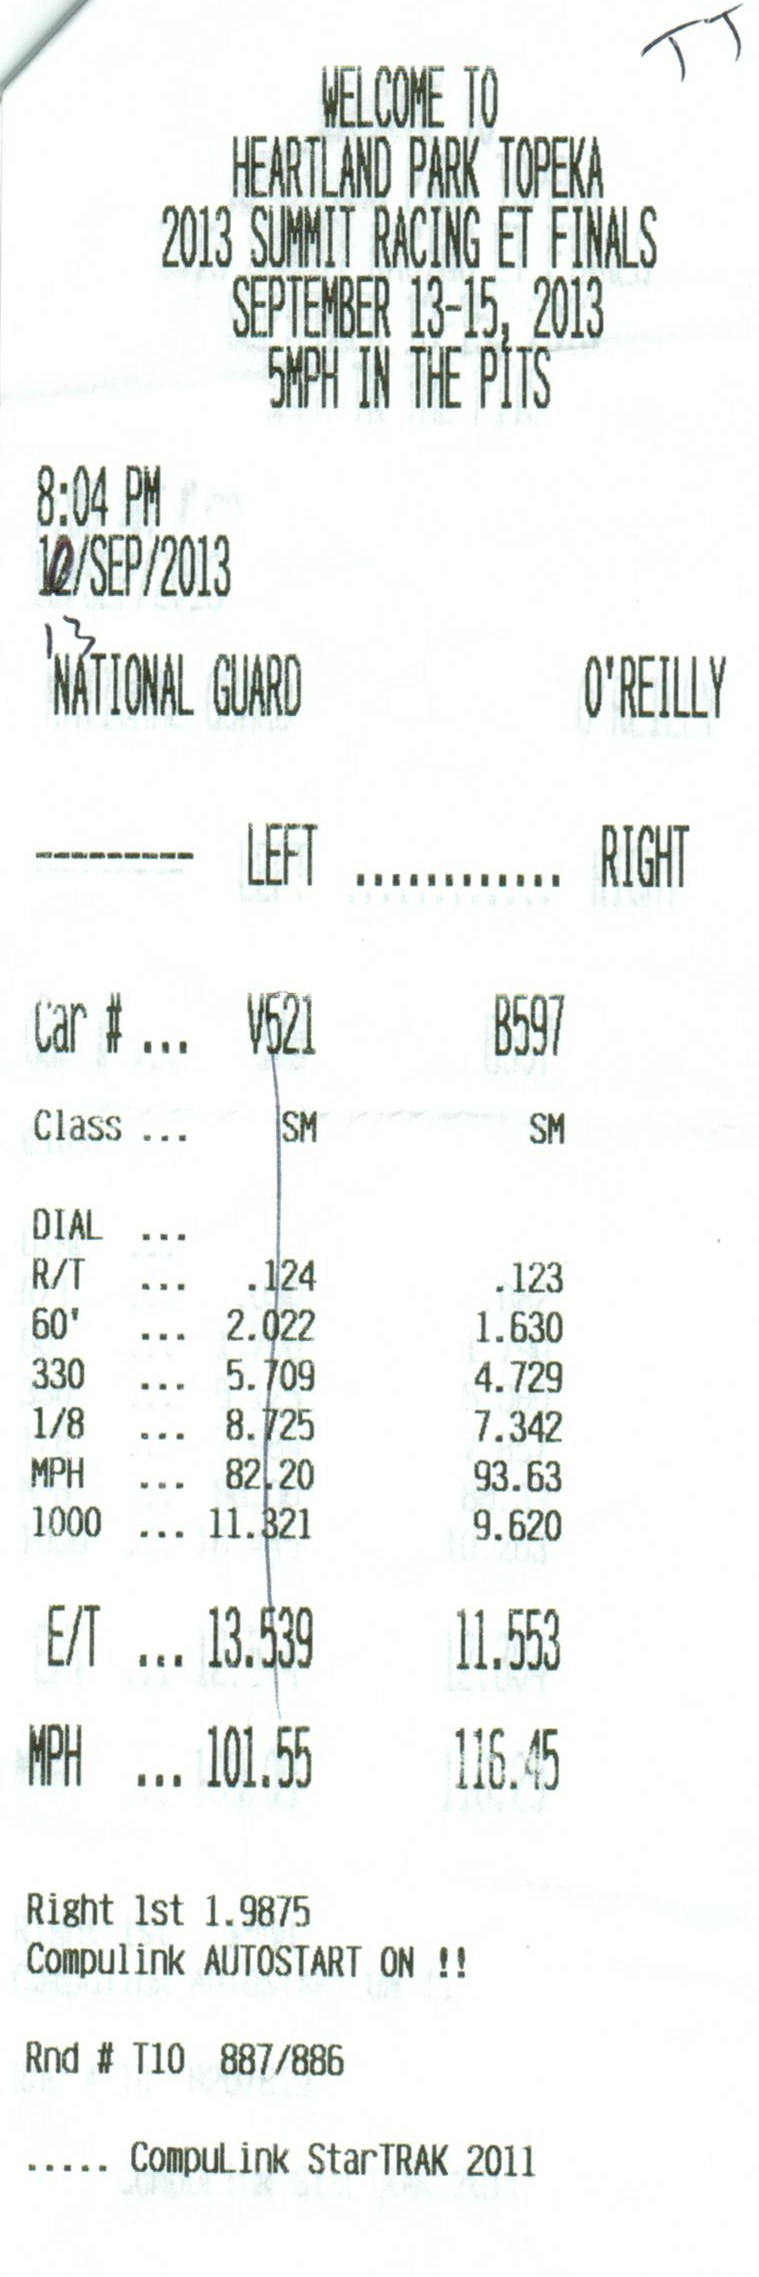 1967 Plymouth Belvedere Ii 1 4 Mile Drag Racing Timeslip Specs 0 60 Gtx Wiring Diagram Scan